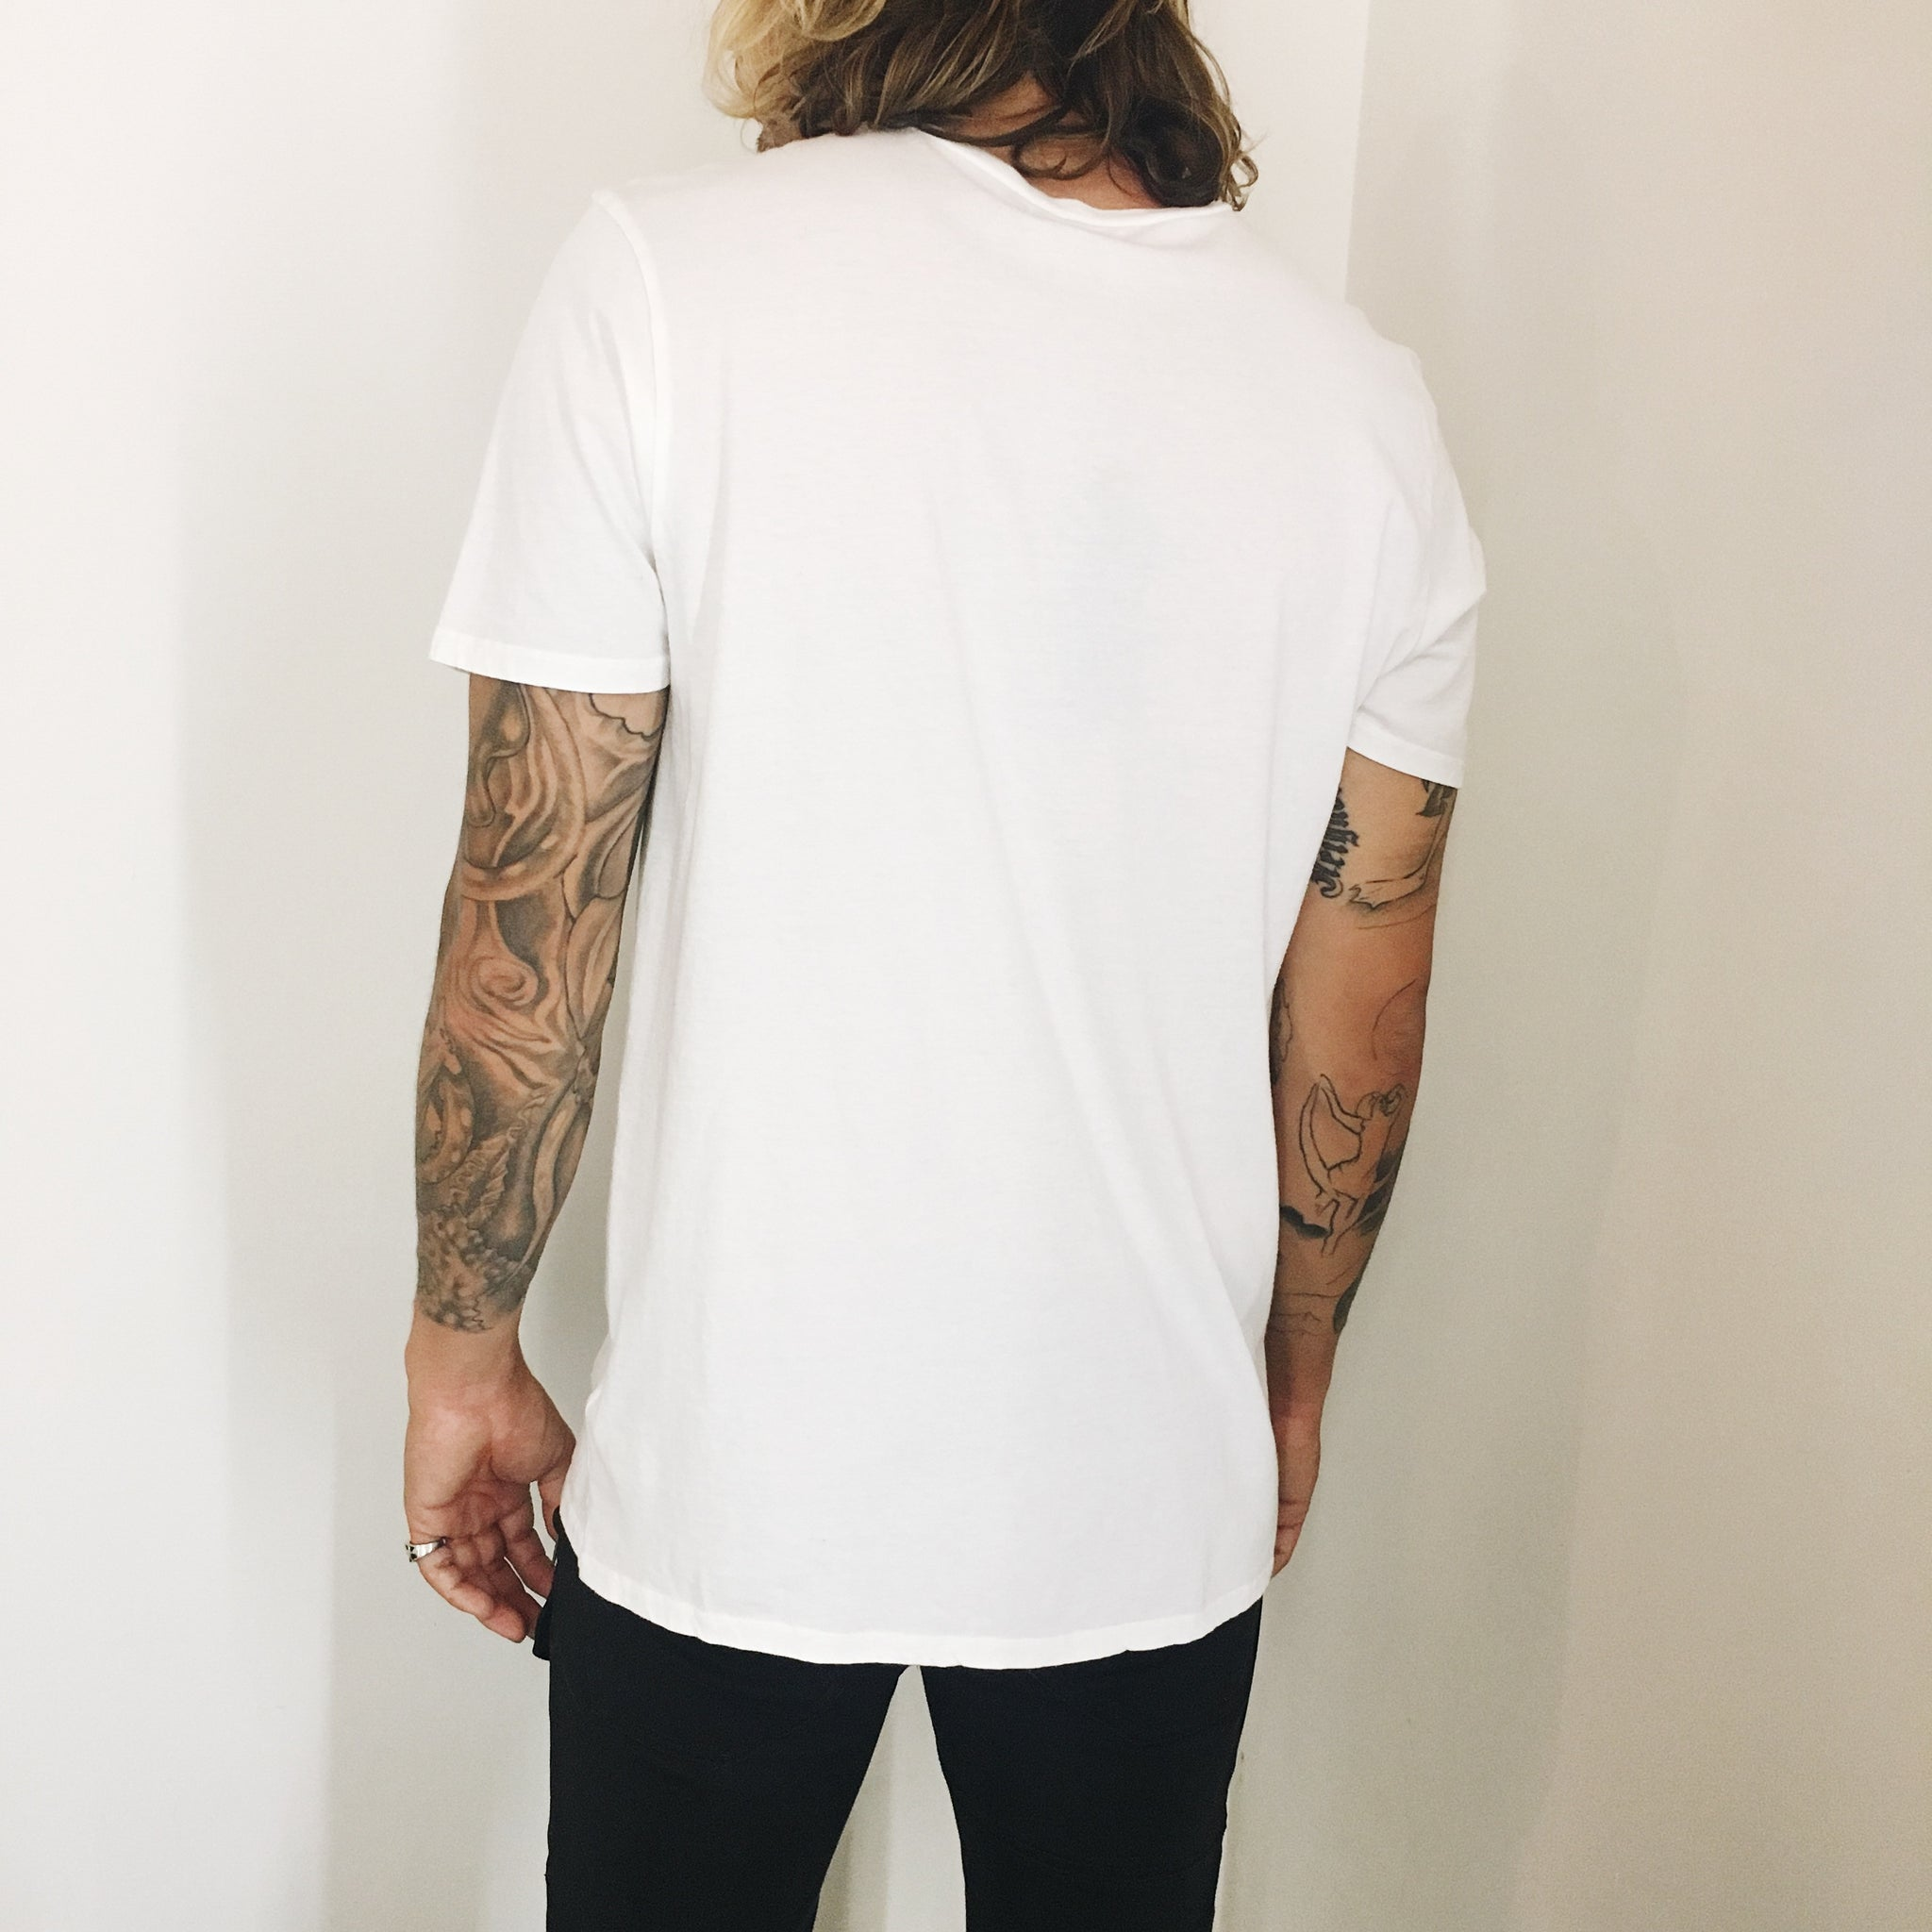 Phoenix General | Men's Crew Tee - White | Men's Tops - Tees | Phoenix General Store